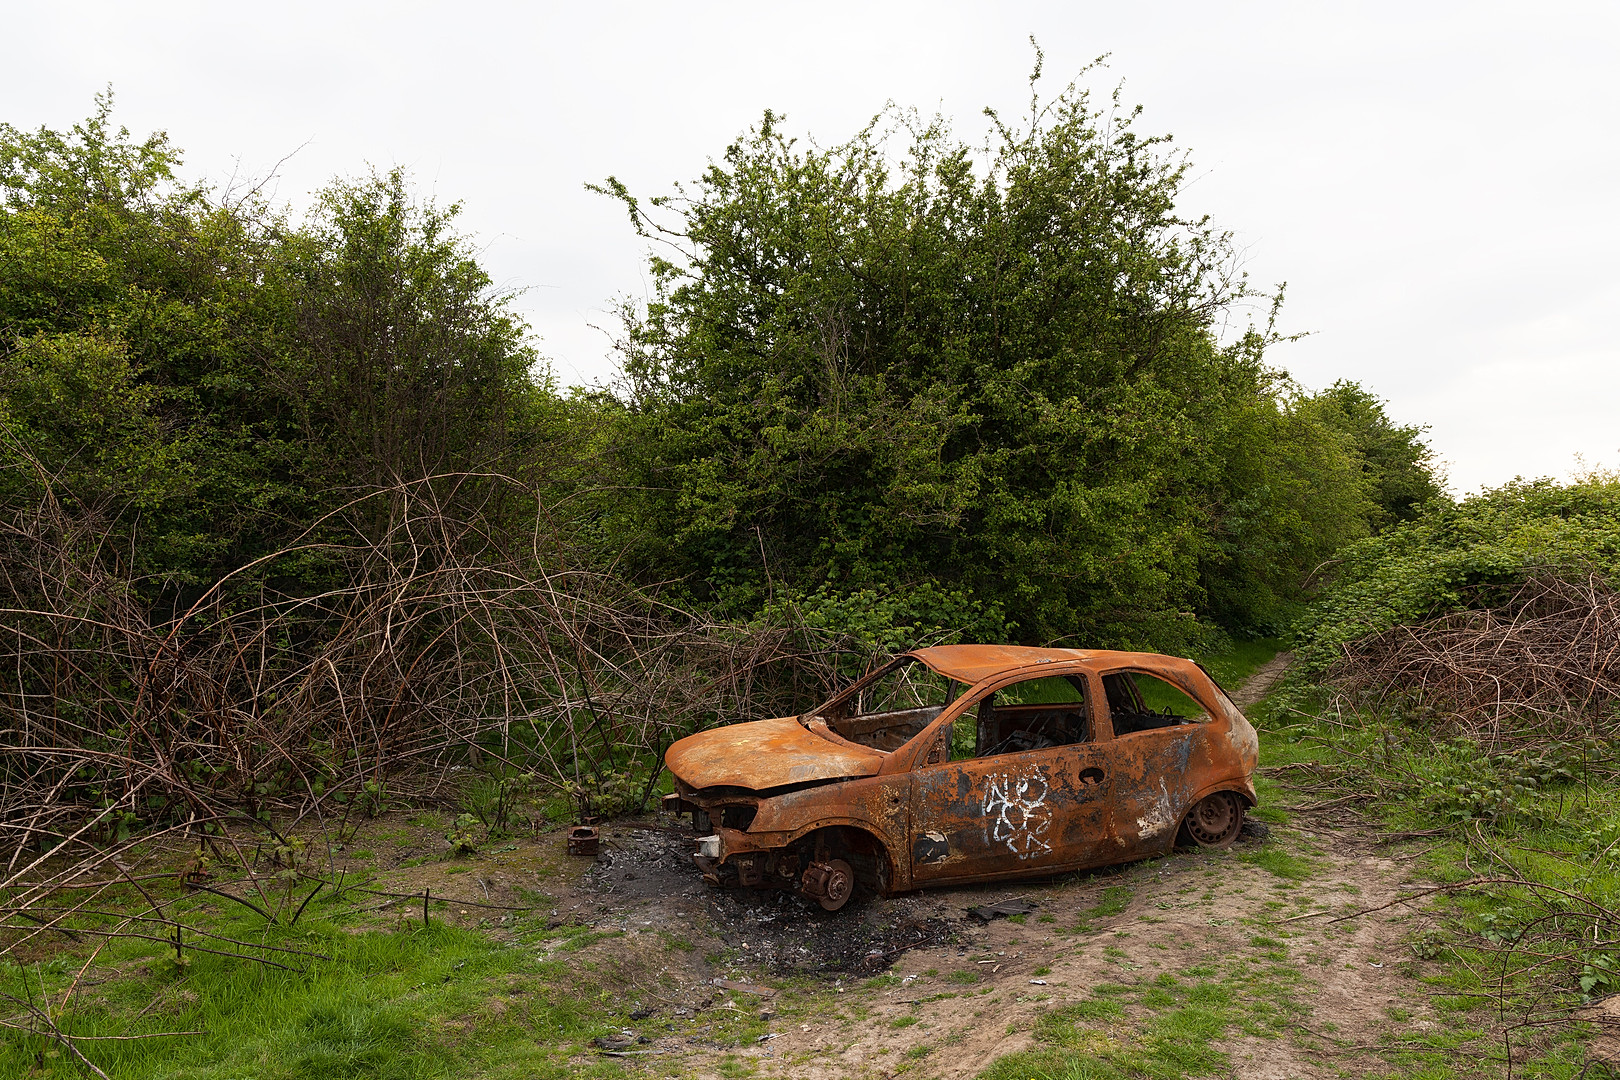 Rusted and burnt out car in wasteland